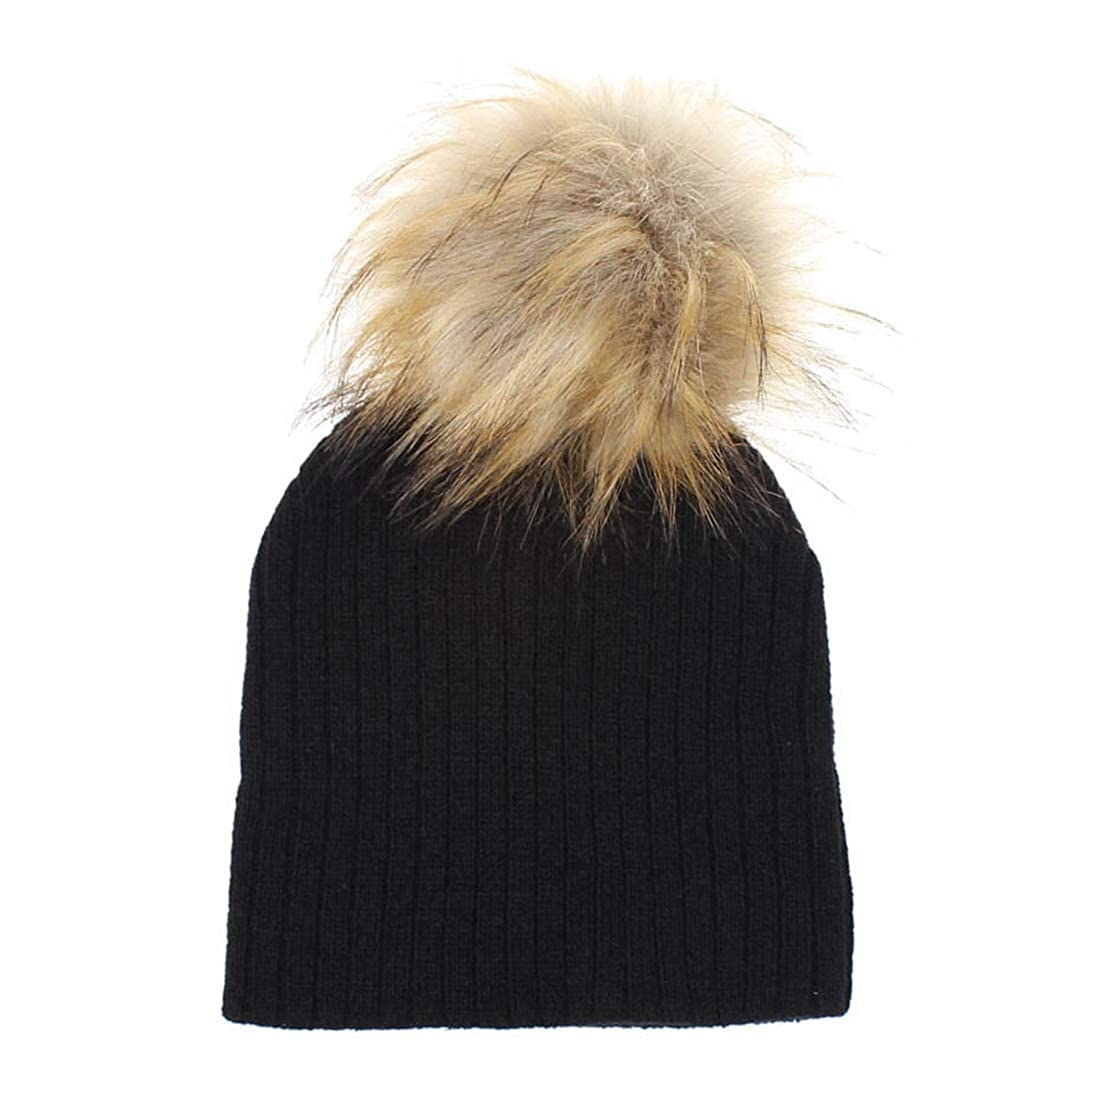 81387a76941 Amazon.com  Eohak Kid Pom Faux-Fur Beanie